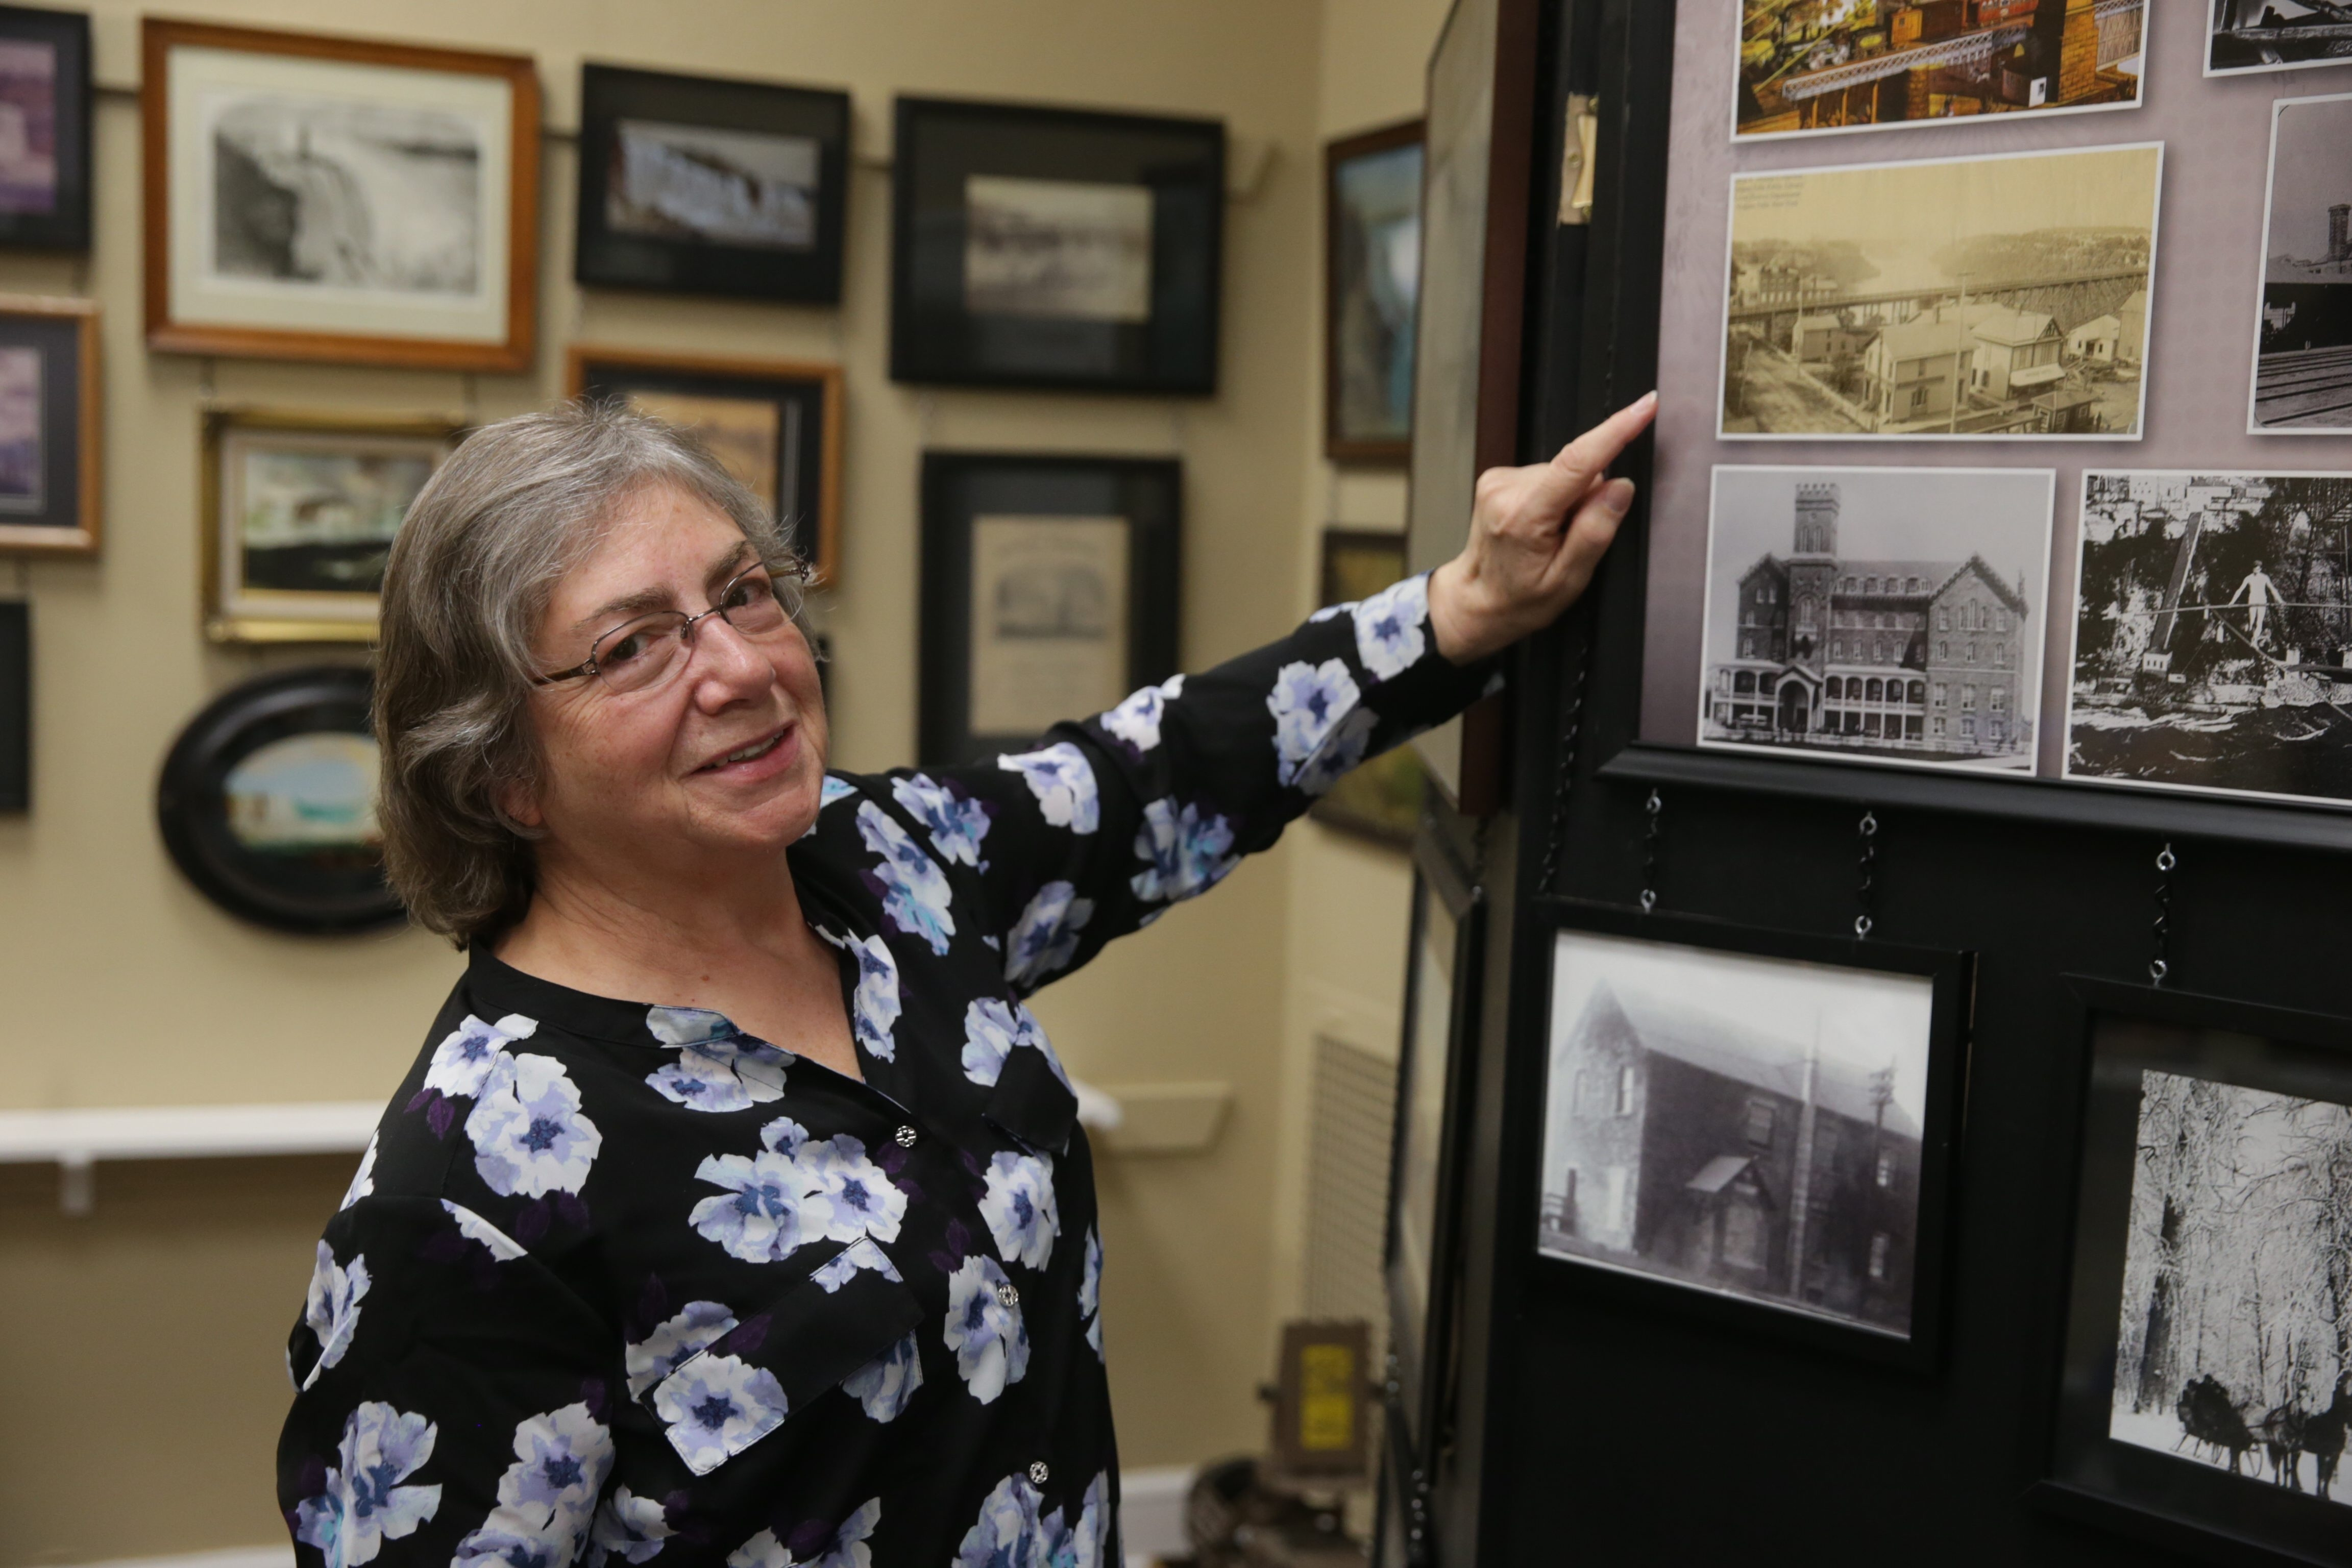 Niagara Falls historian Elaine Timm, points out a photograph in the Niagara Arts and Cultural Center.